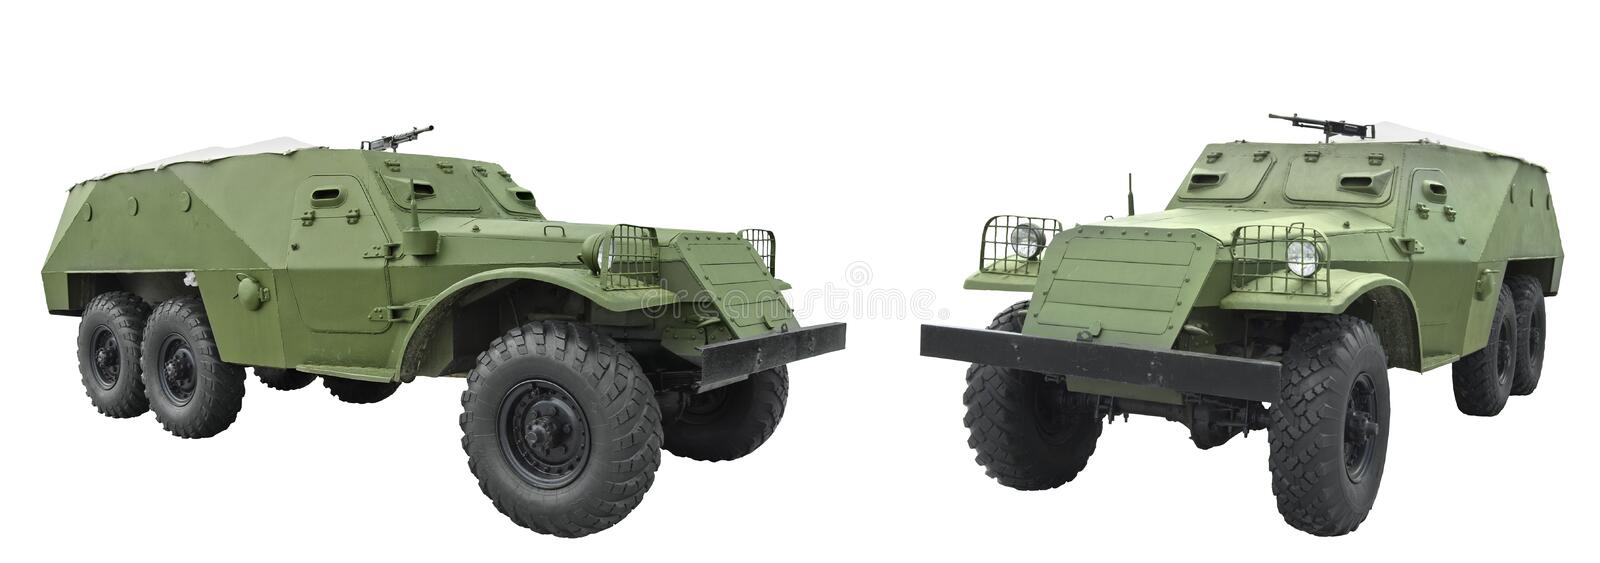 BTR-152 - armored personnel carrier. Used in the armed forces of the Soviet Army in 1950 royalty free stock photography